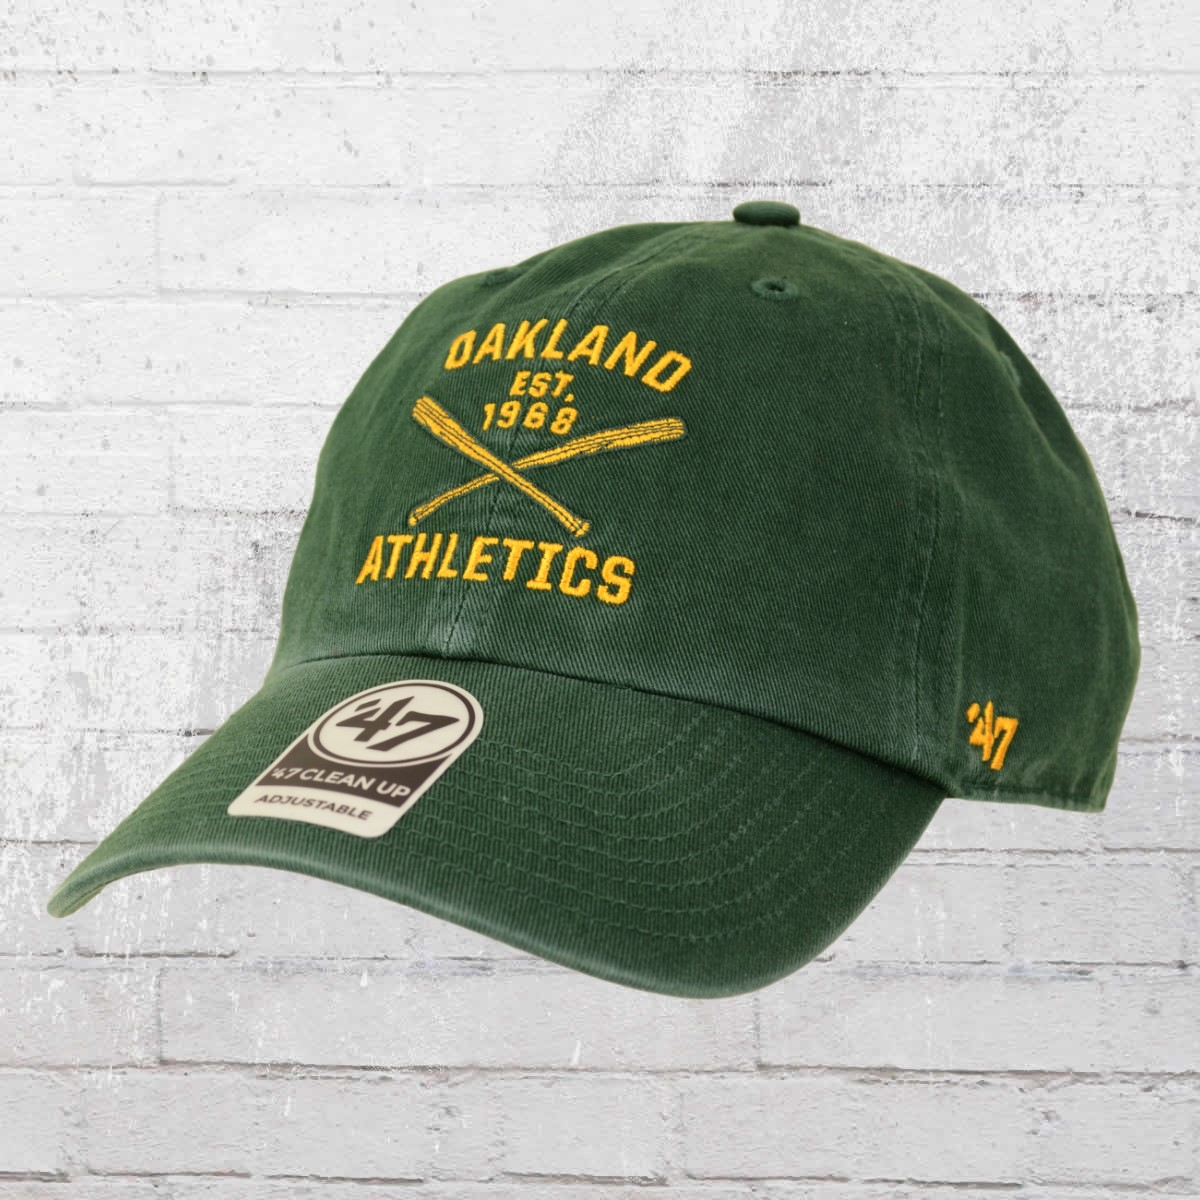 f70ce2a3 Order now   47 Brands Clean Up Cap Oakland Athletics vintage green